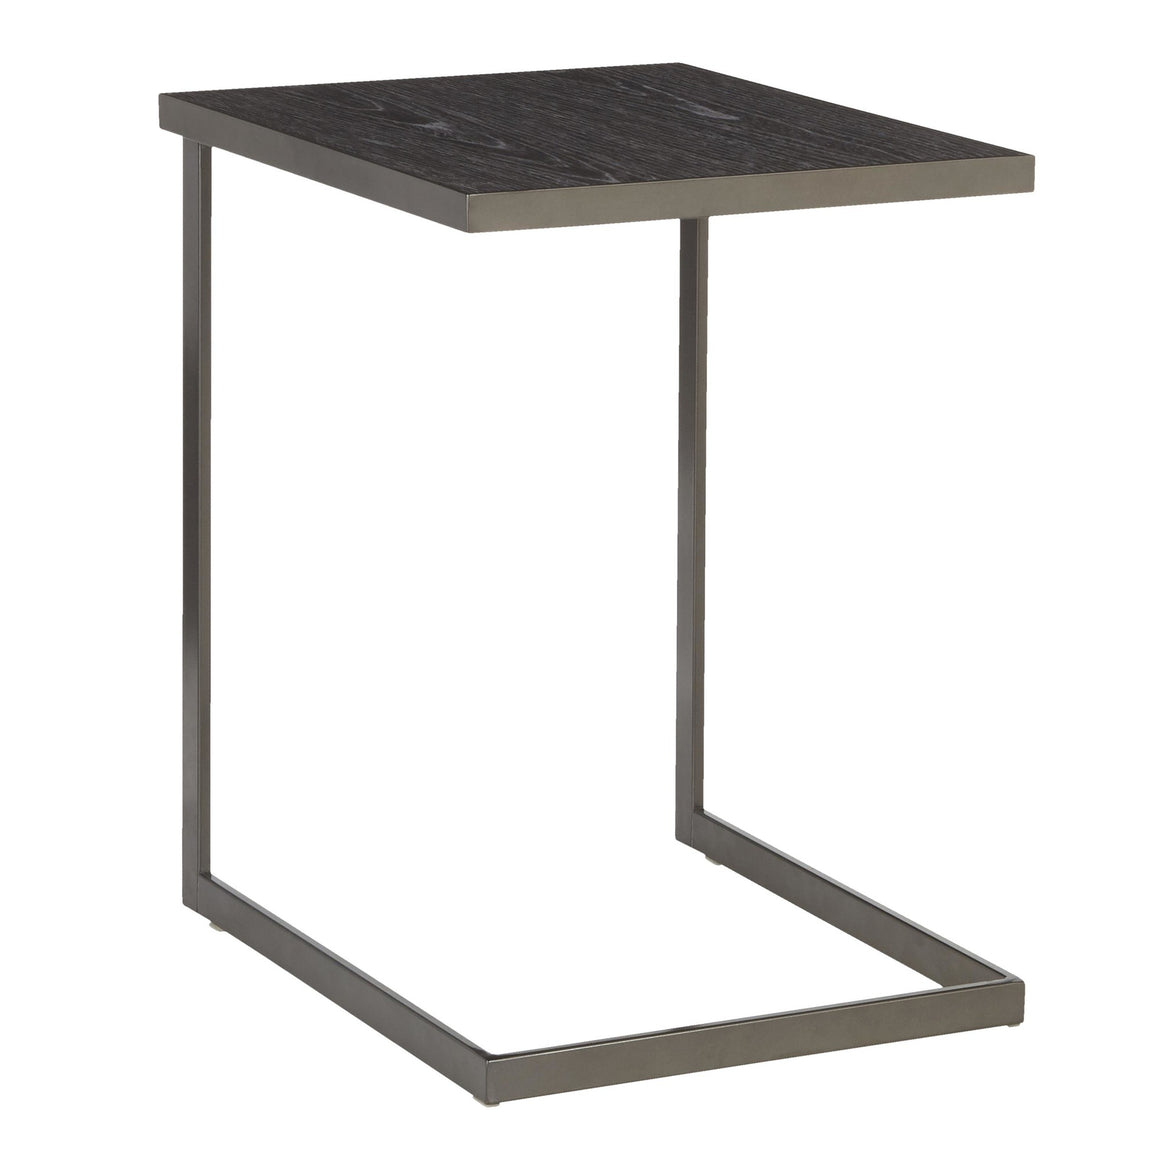 Industrial Zenn End Table in Antique Metal and Dark Grey Wood by LumiSource